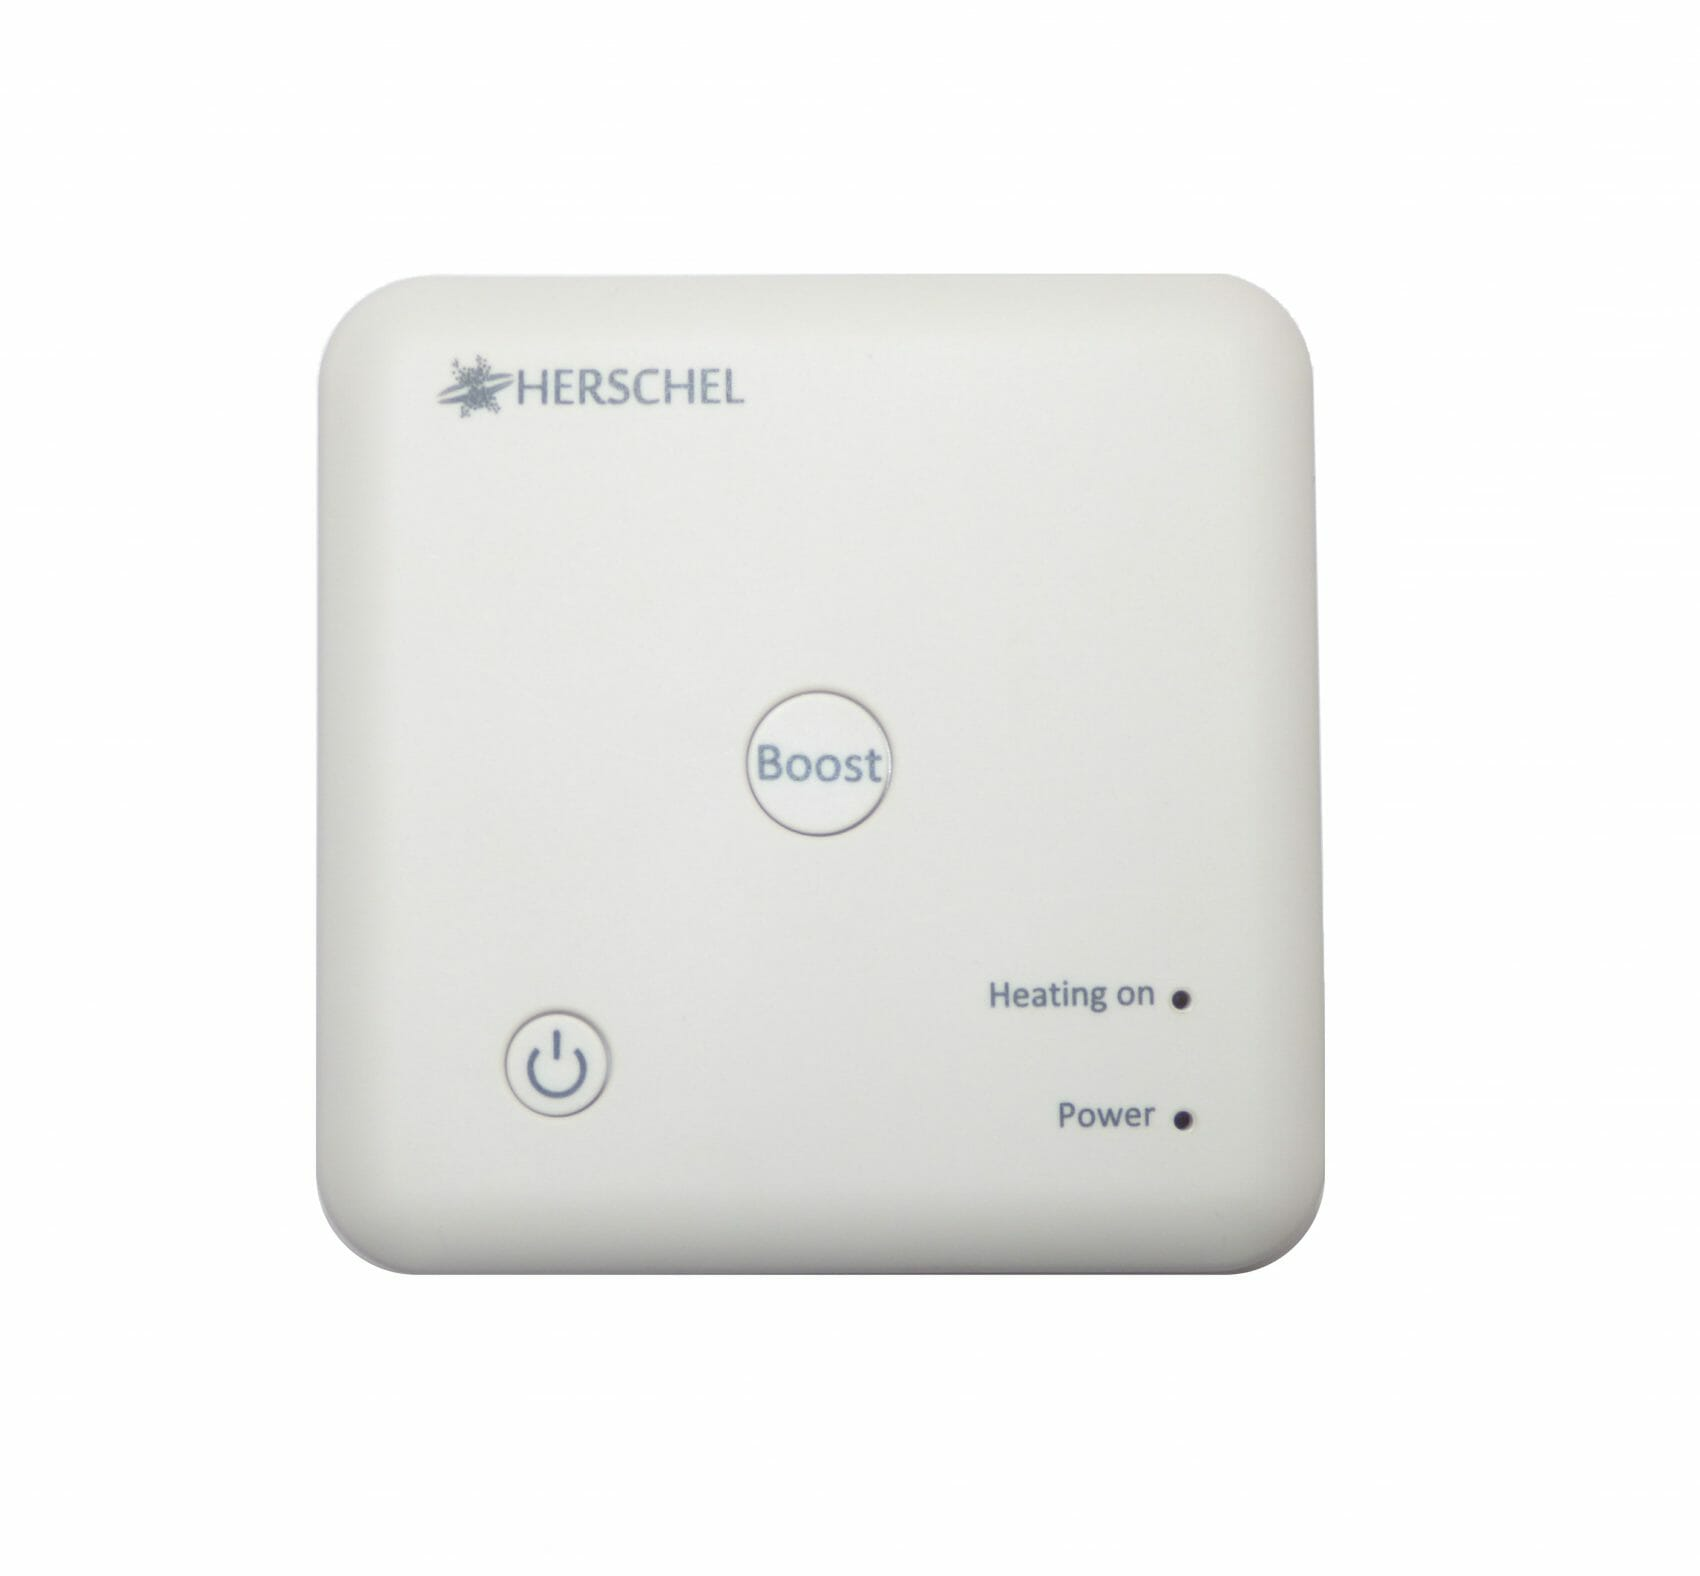 Herschel iQ R1 Wireless Receiver